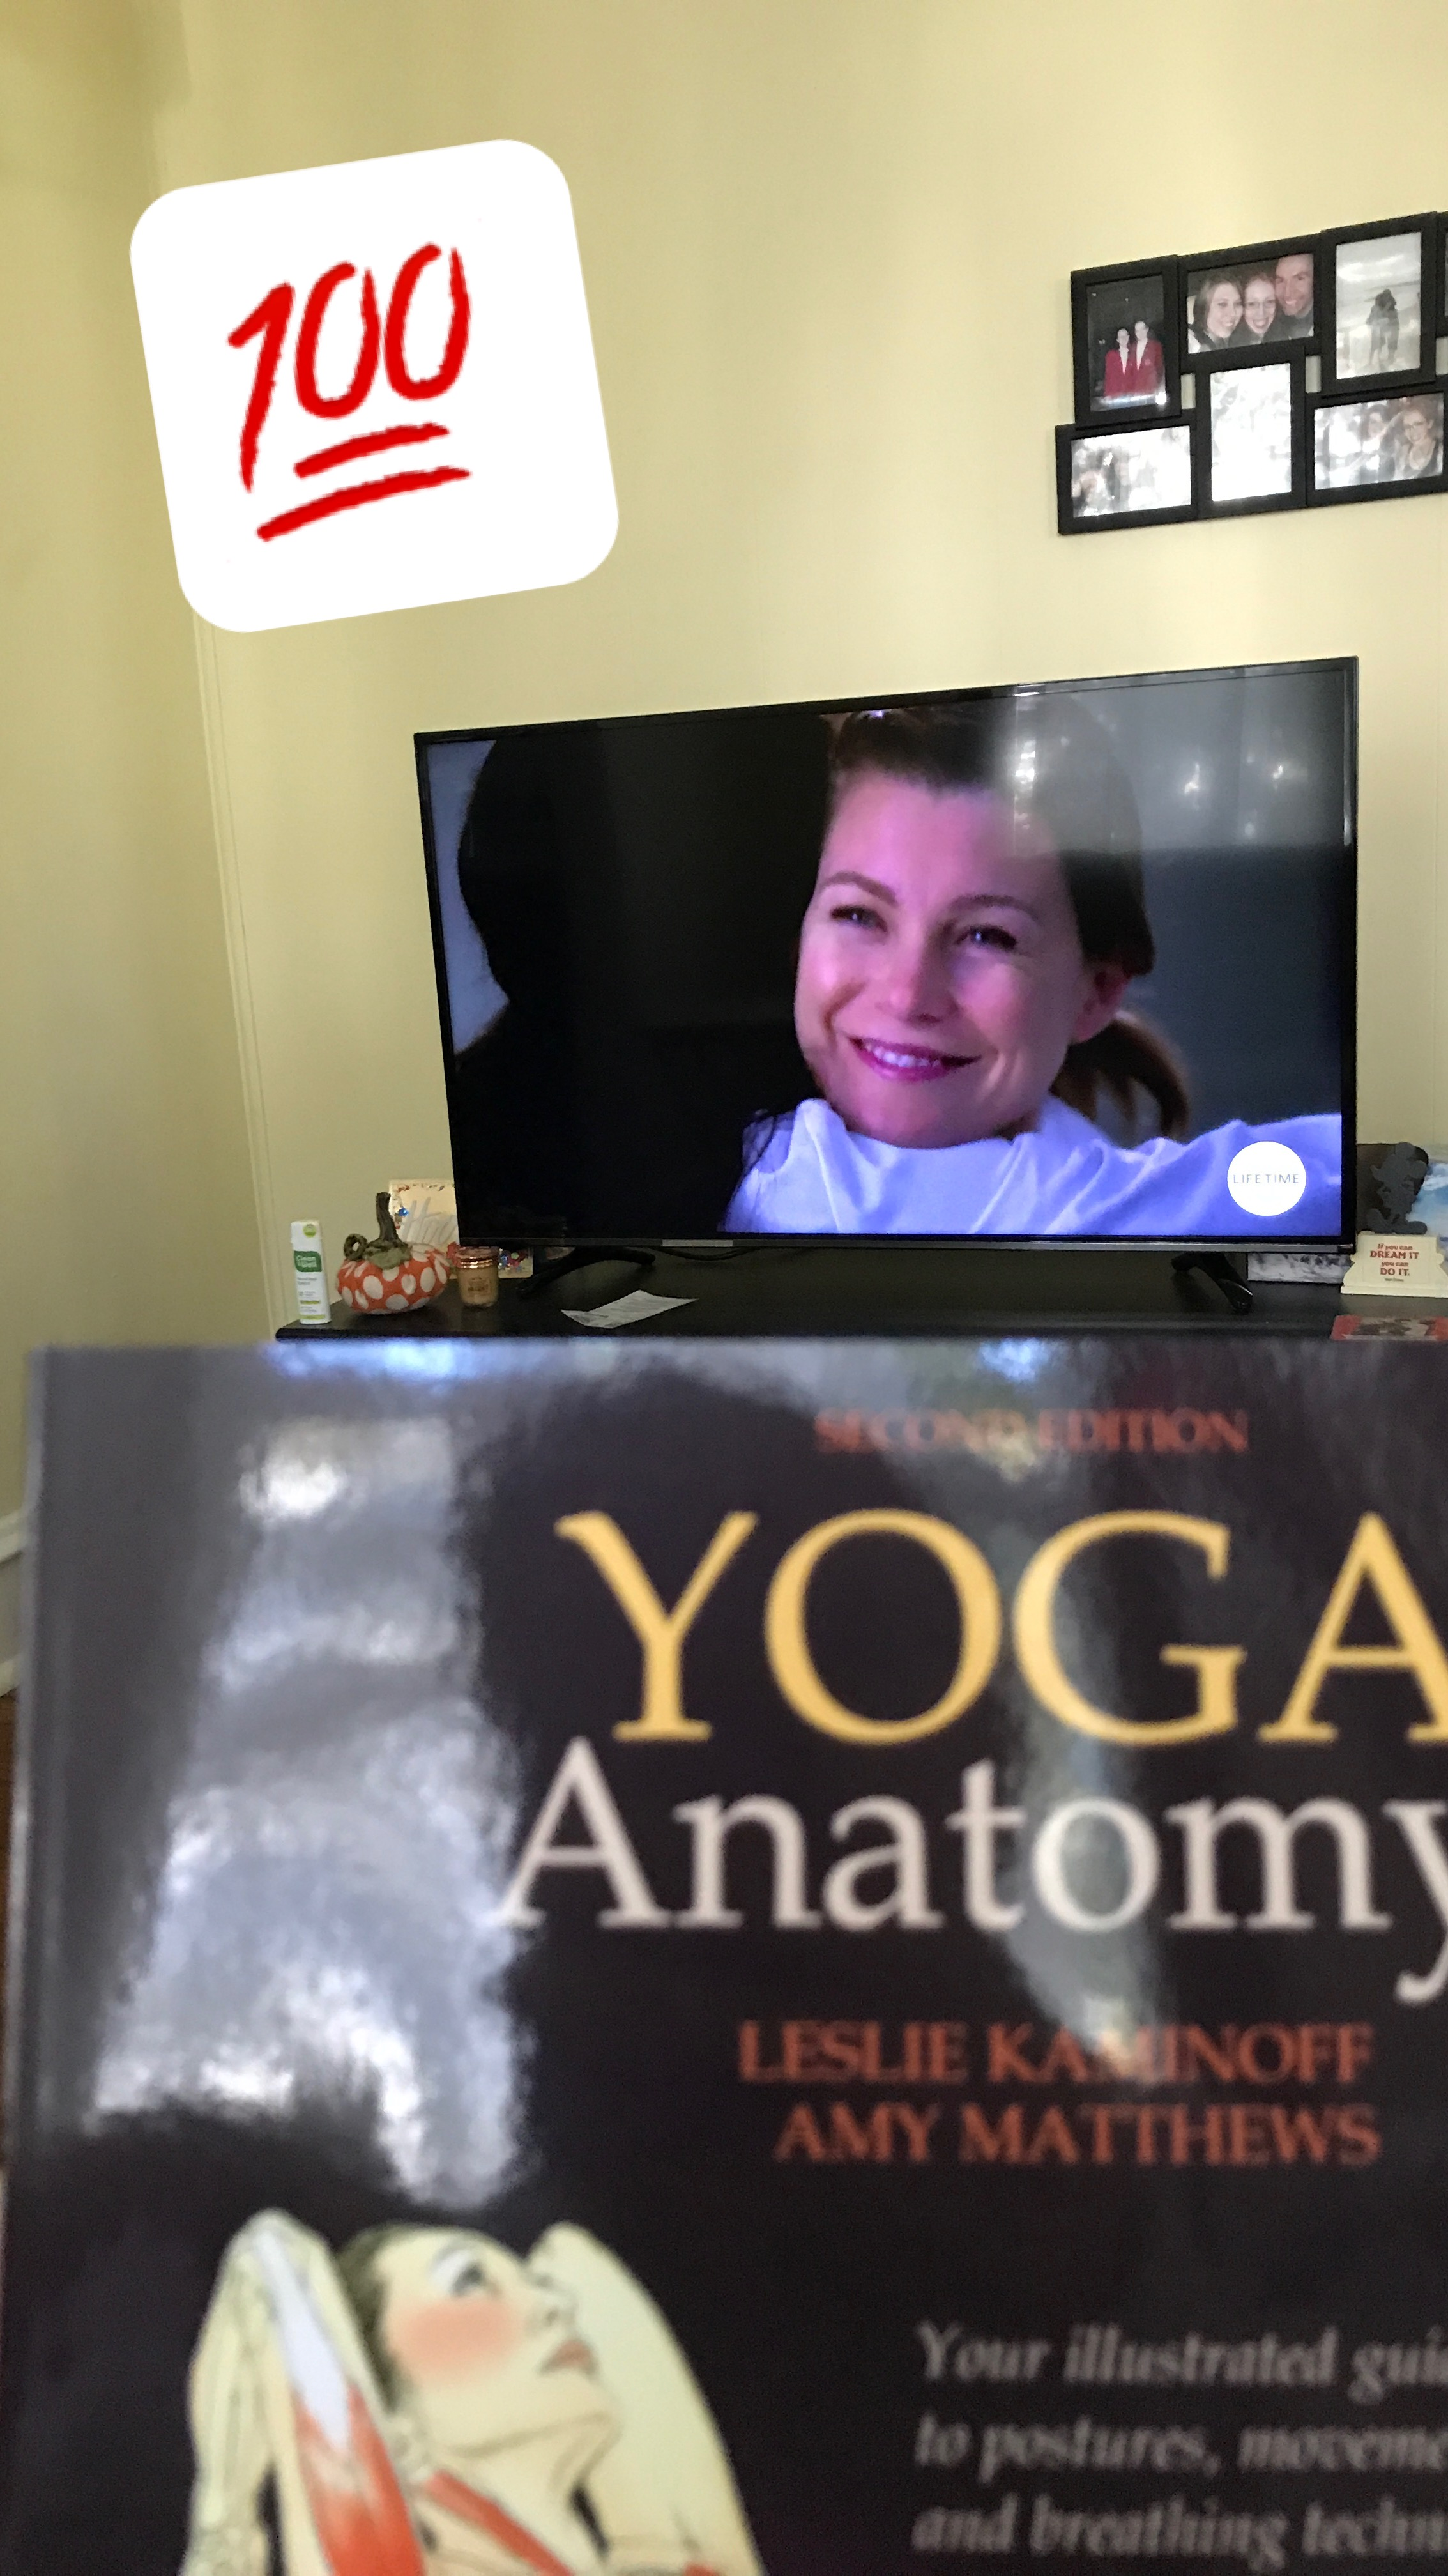 I did actually have  Grey's  on when Y oga Anatomy arrived in the mail! If only Ellen Pompeo narrated that too...